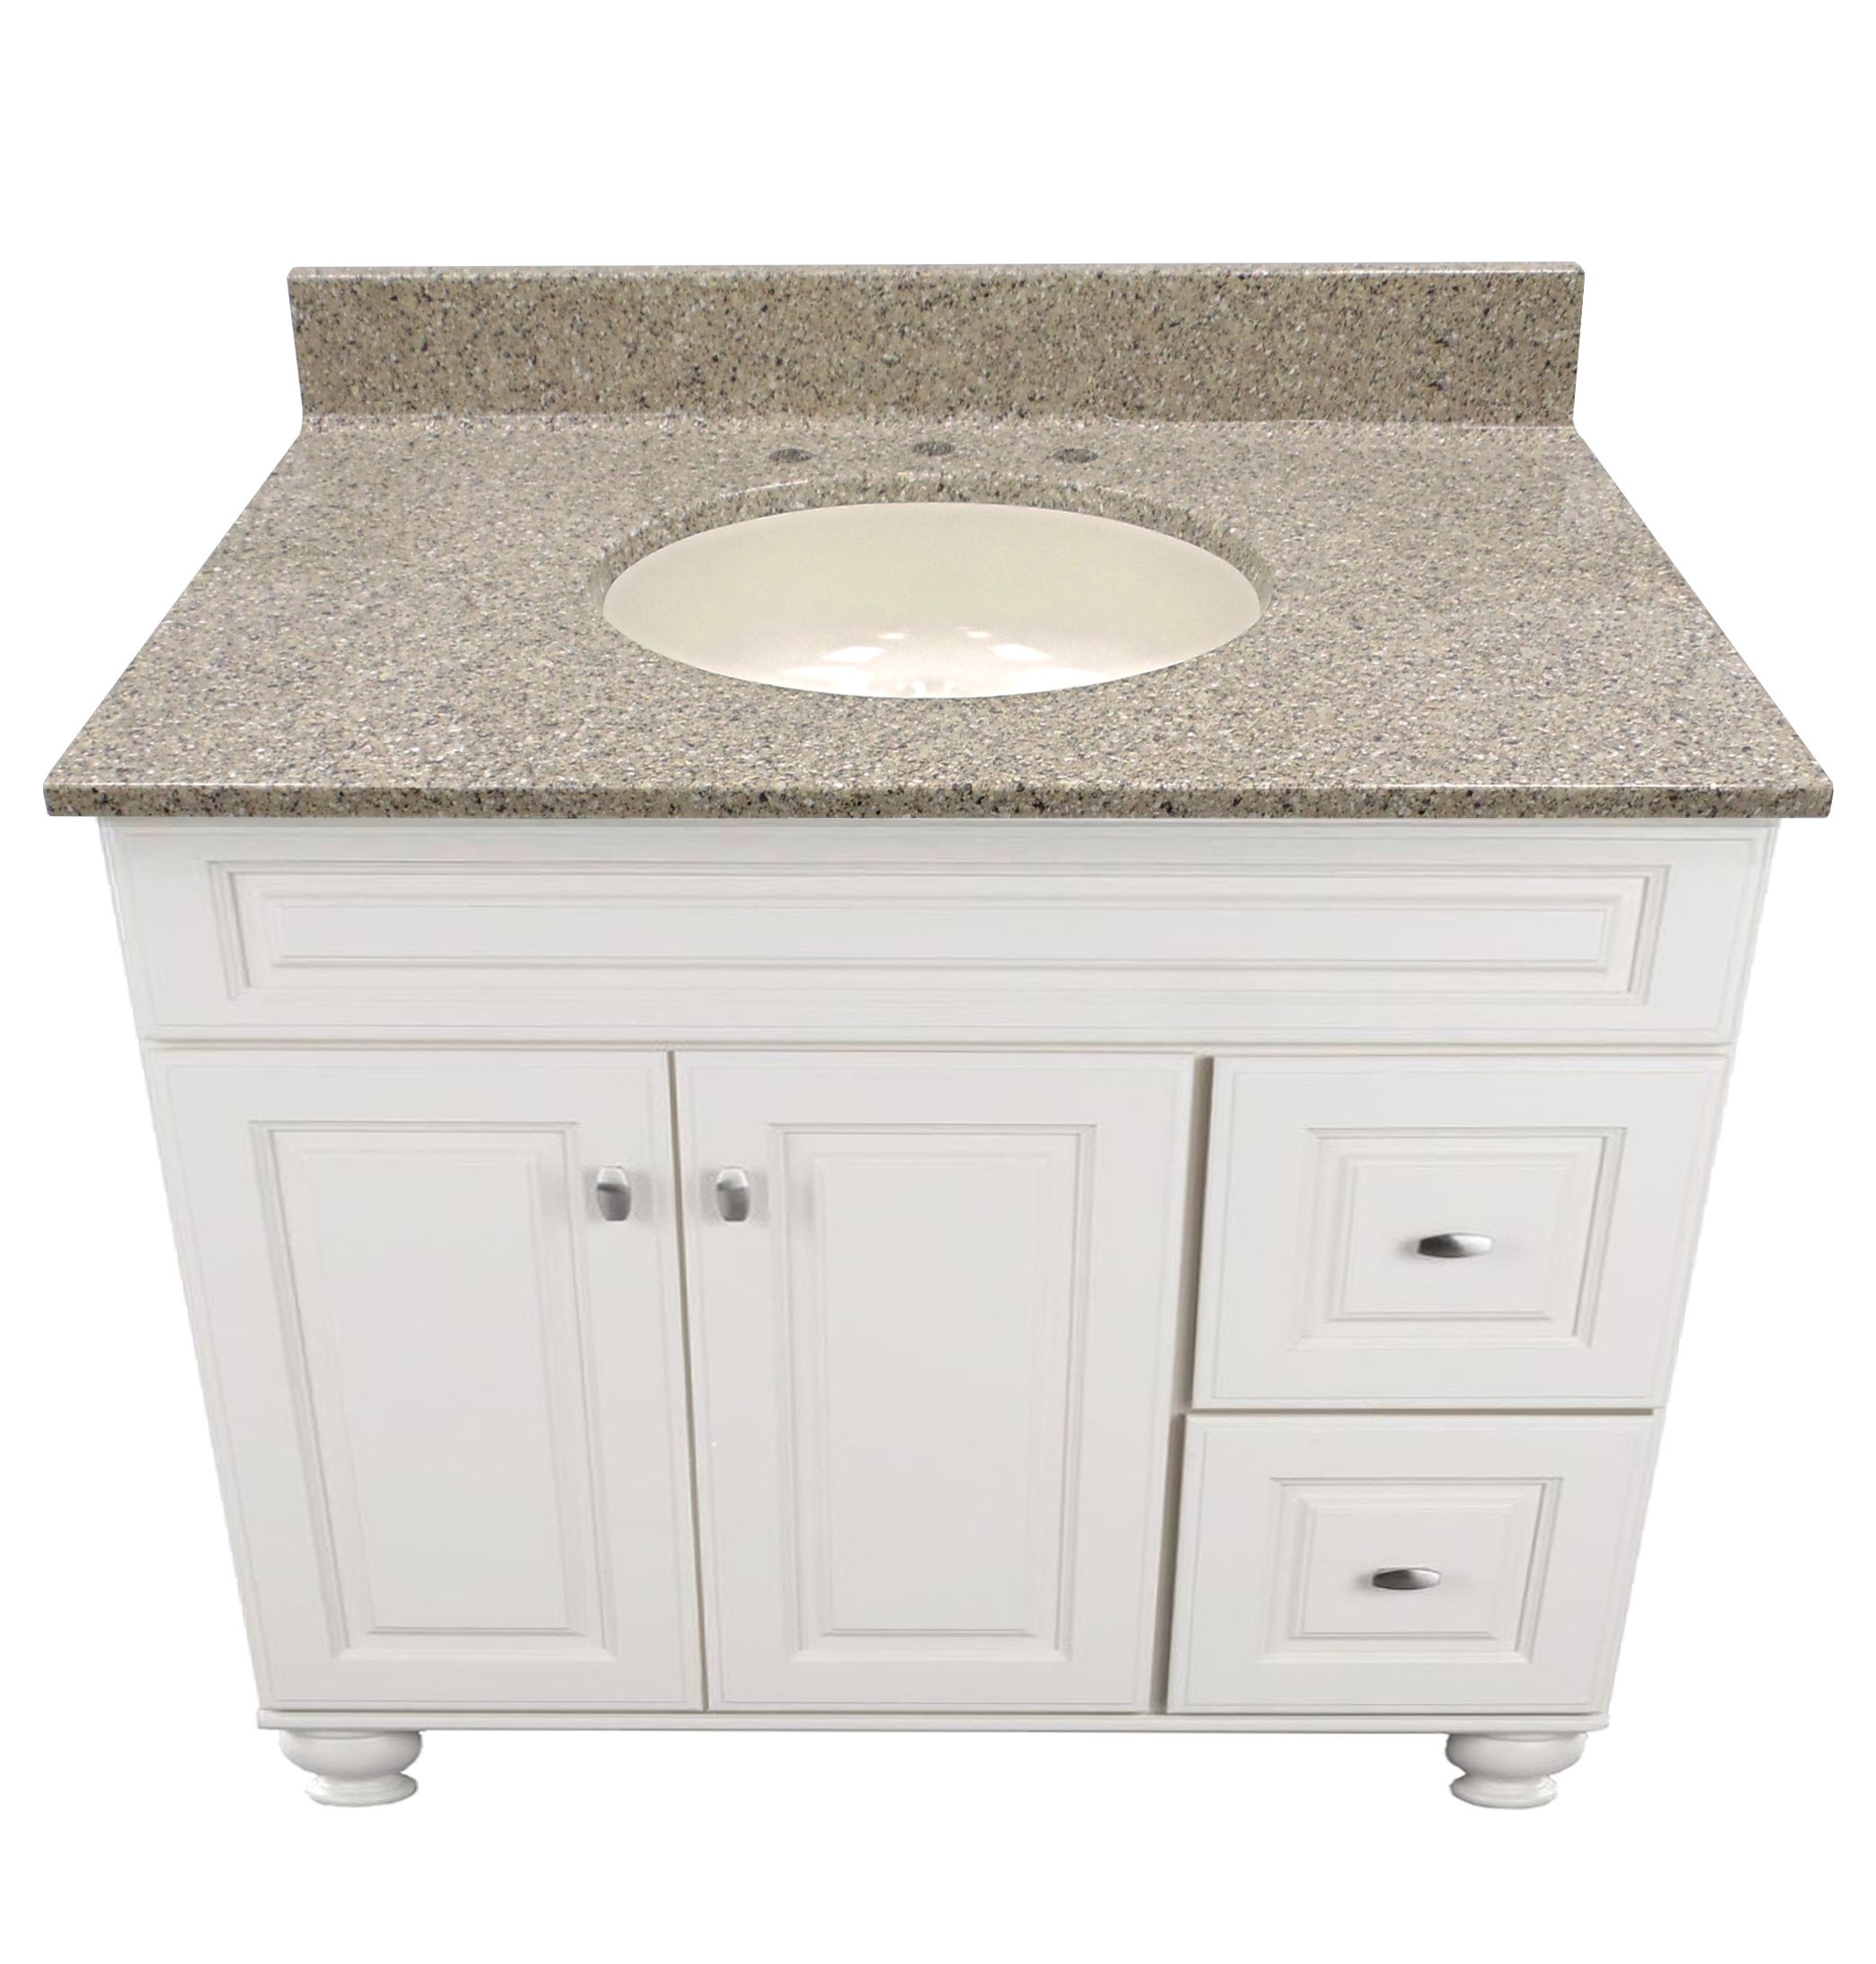 Vanities · US Marble Cultured Magna Granite, shown in Pebble. Eased Edge  with Oval Undermount Bowl